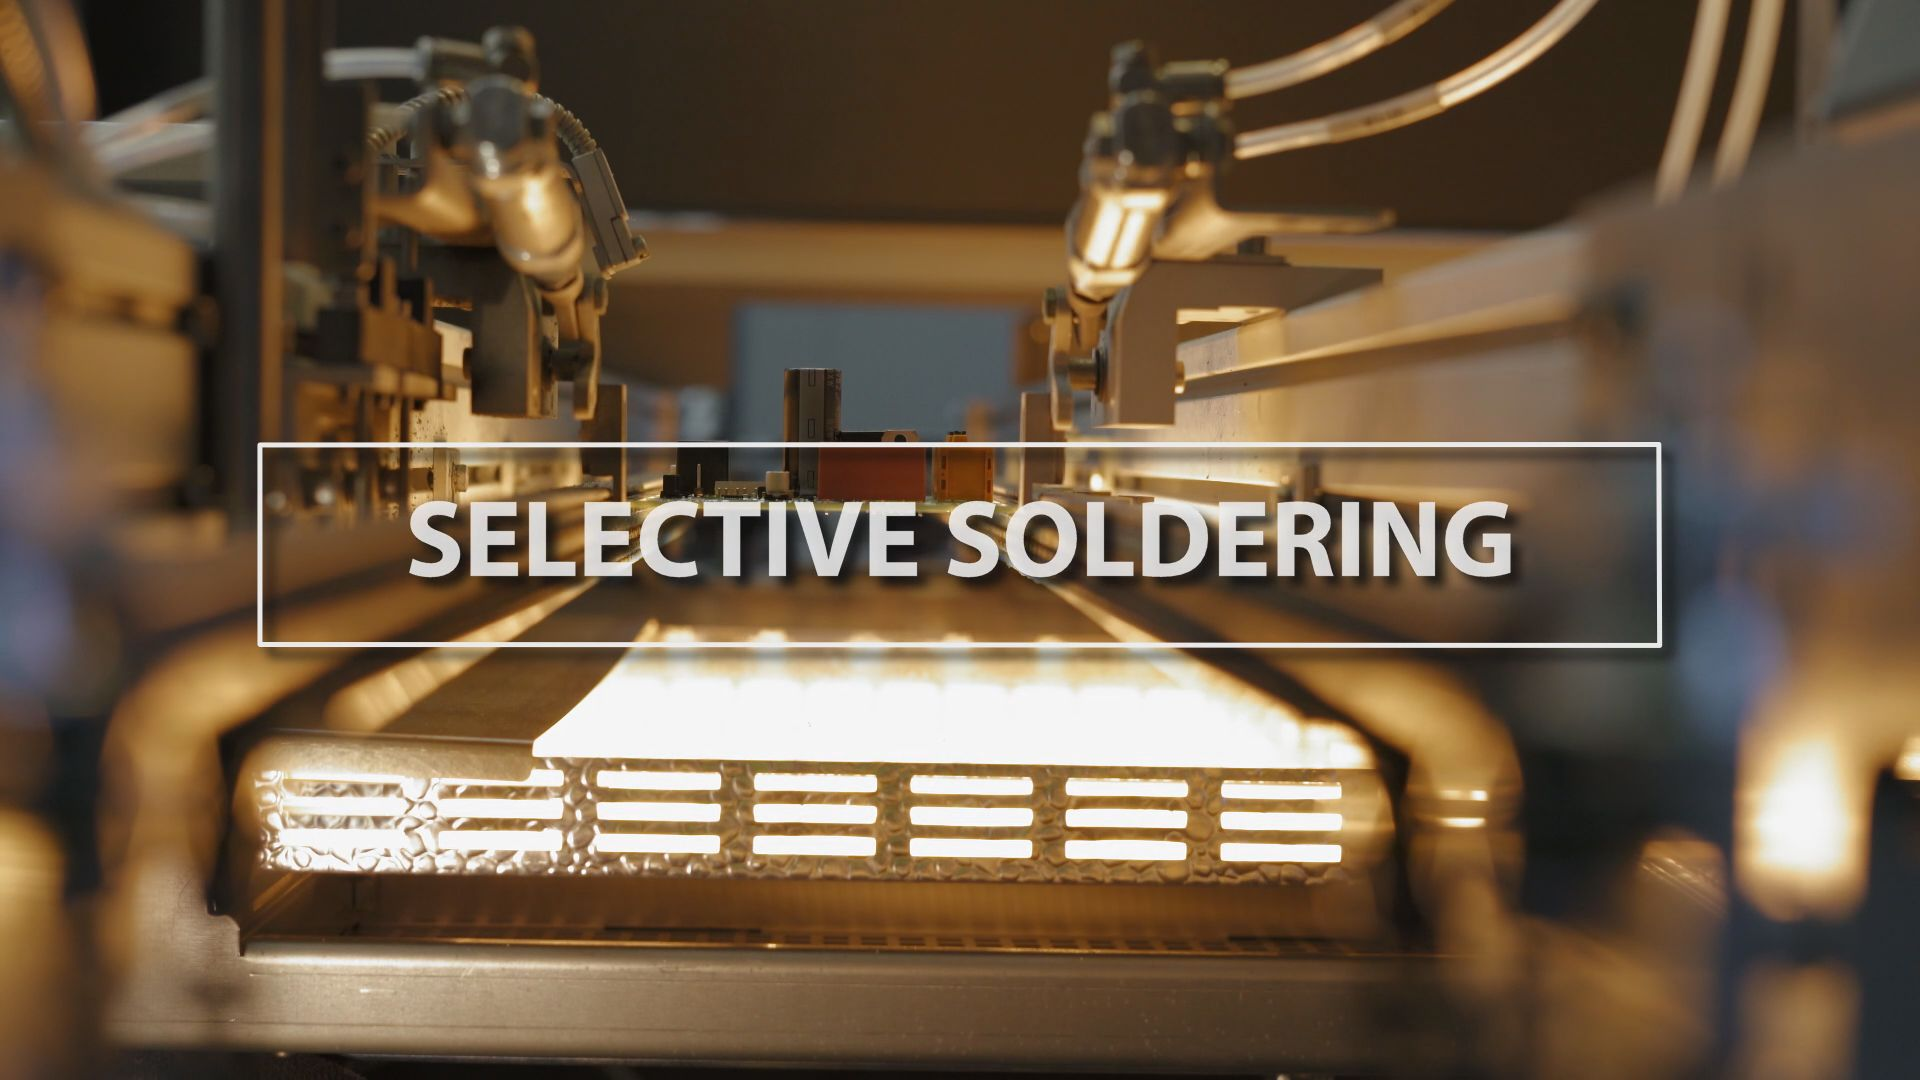 Technology Thursday: Selective Soldering